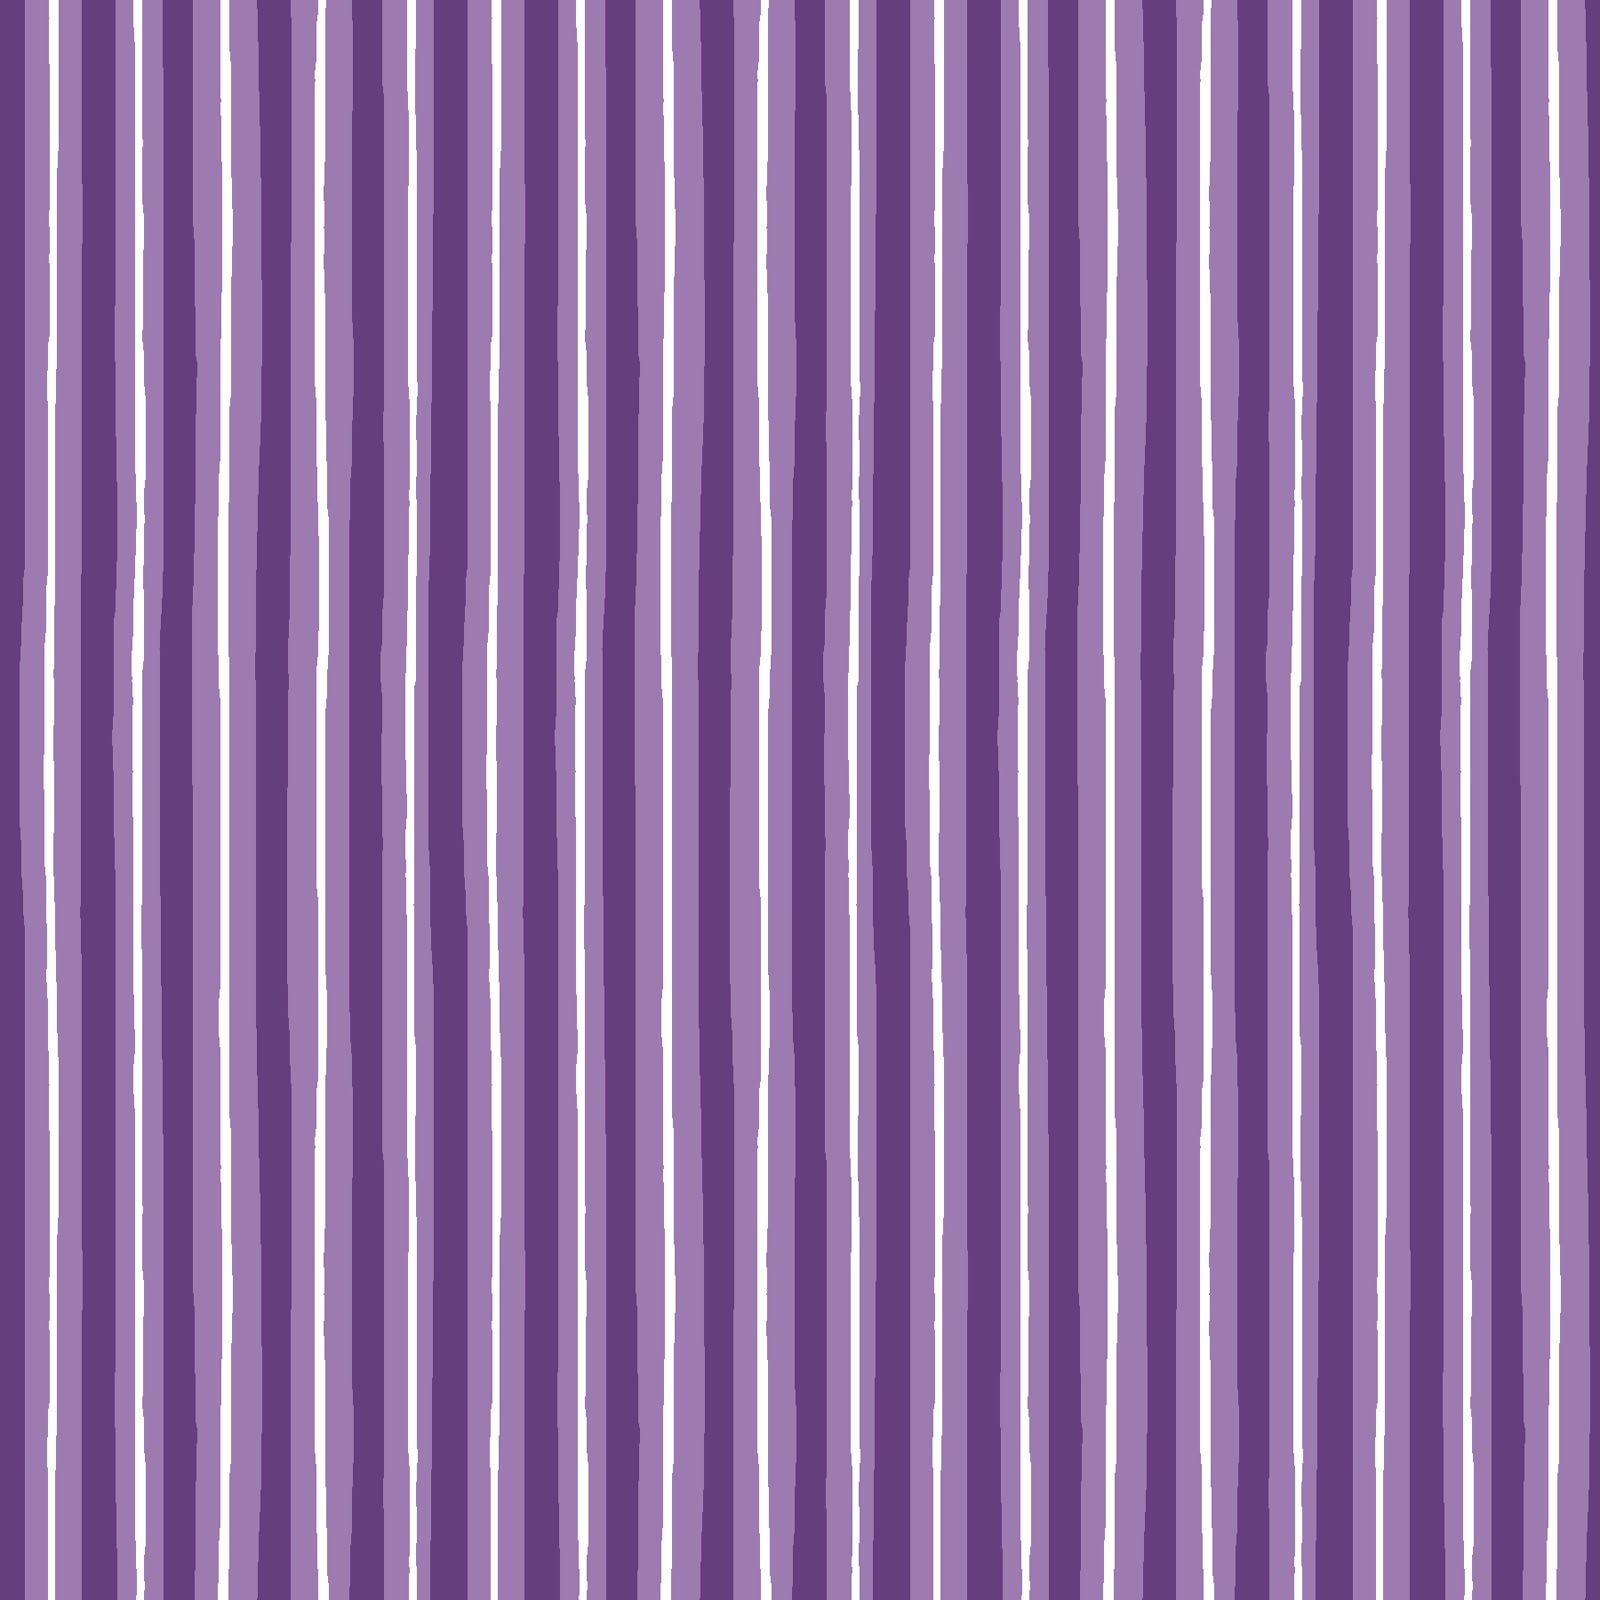 KimberBell Basics Violet Little Stripe 8242M-V